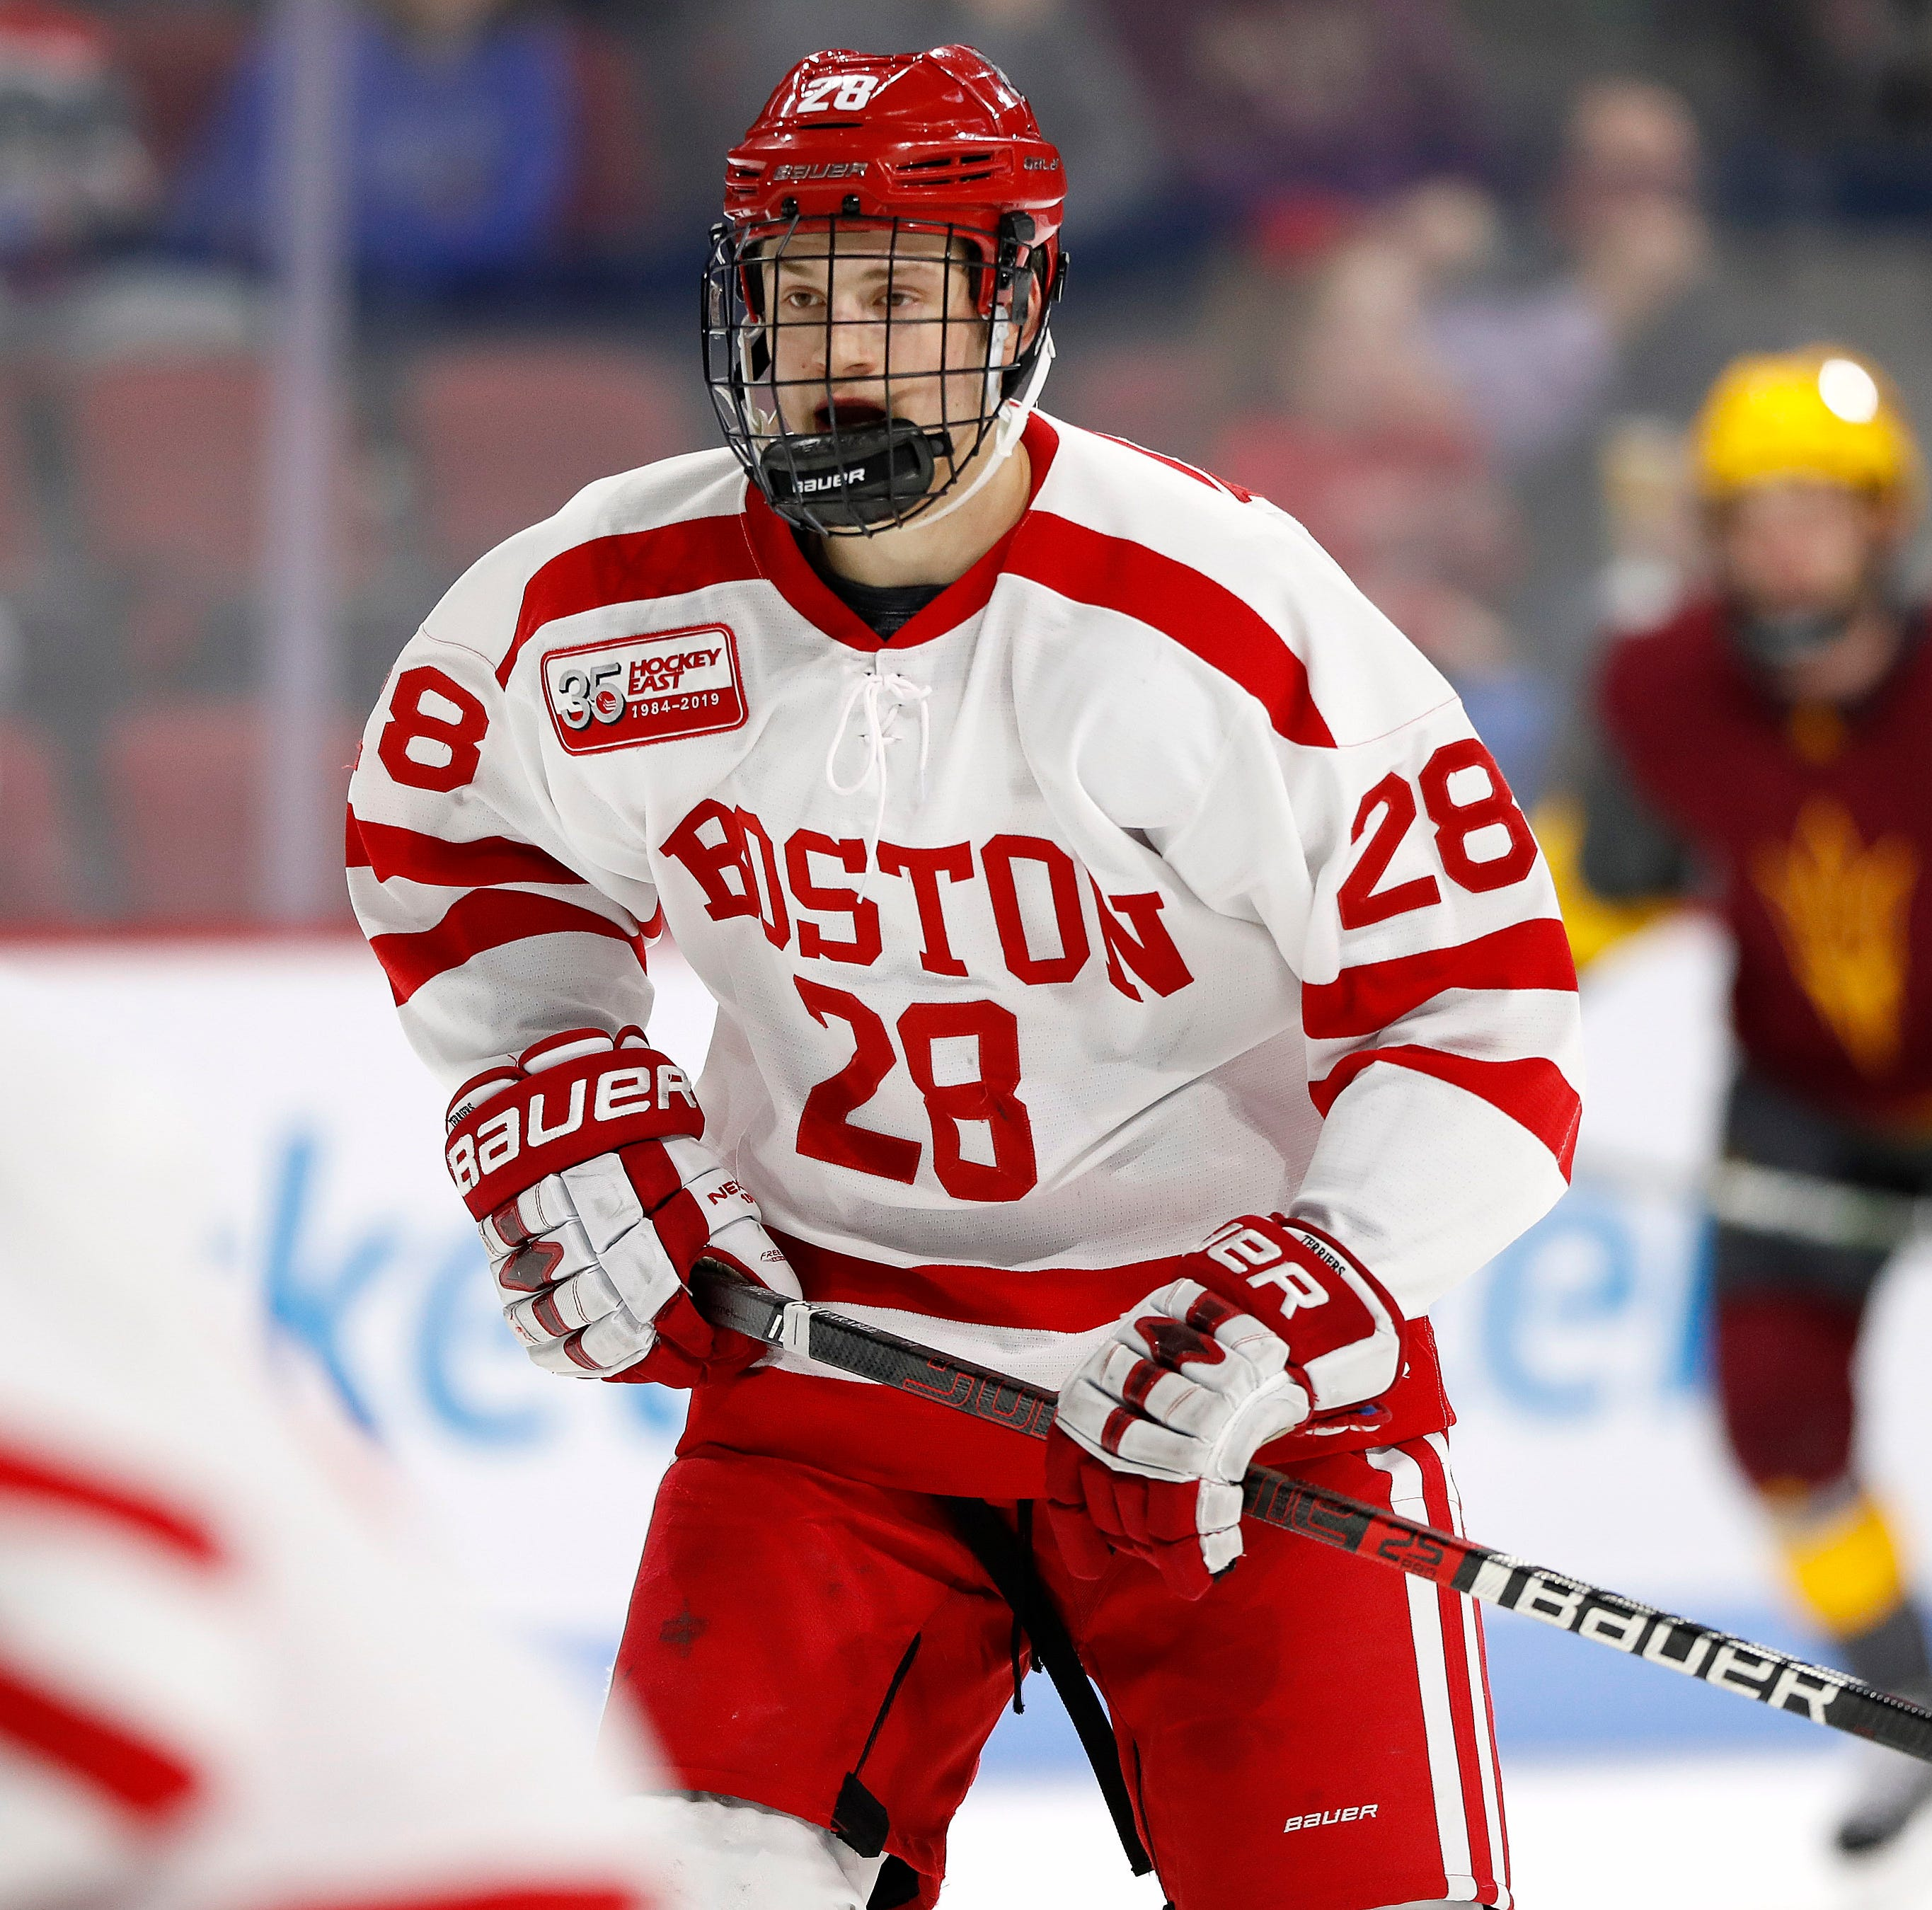 Joel Farabee leaves Boston University after one season, signs with Flyers